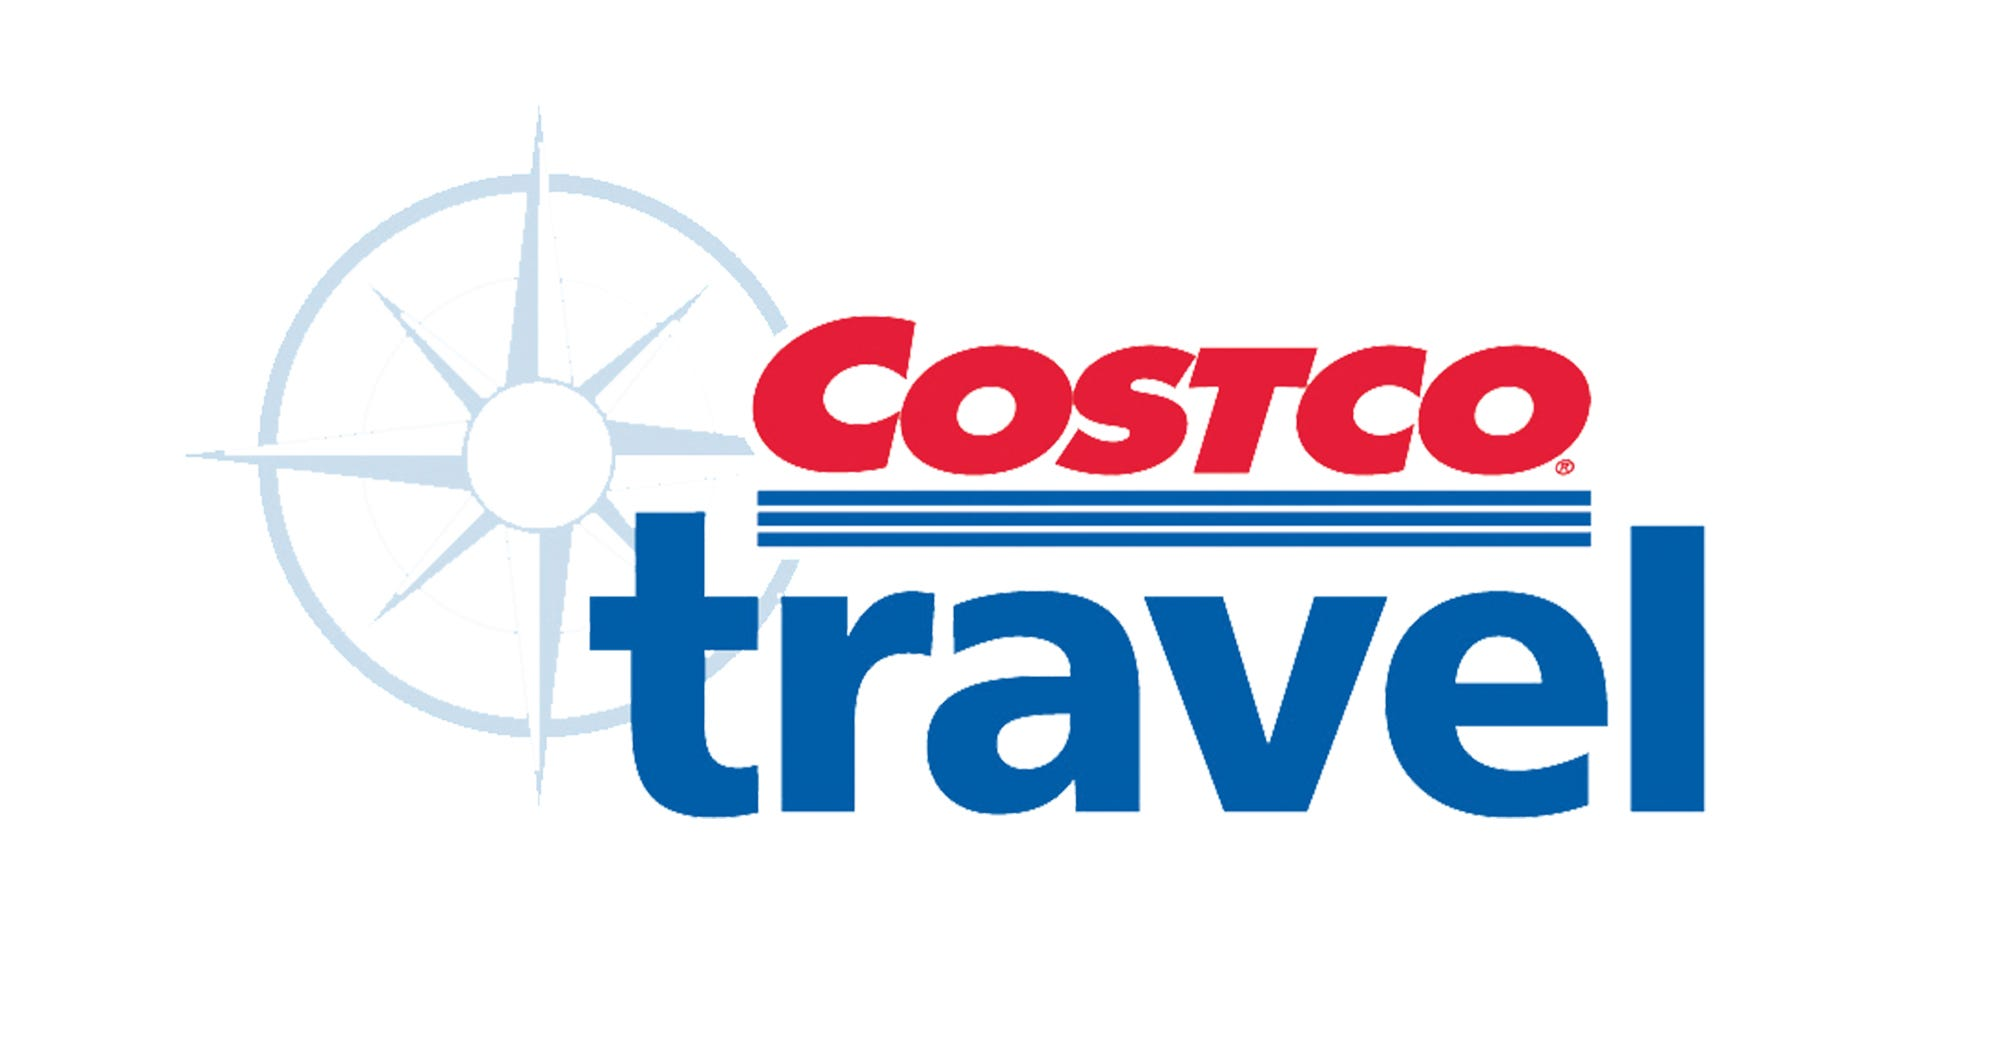 Costco Travel Packages Deals  Booking Site Review